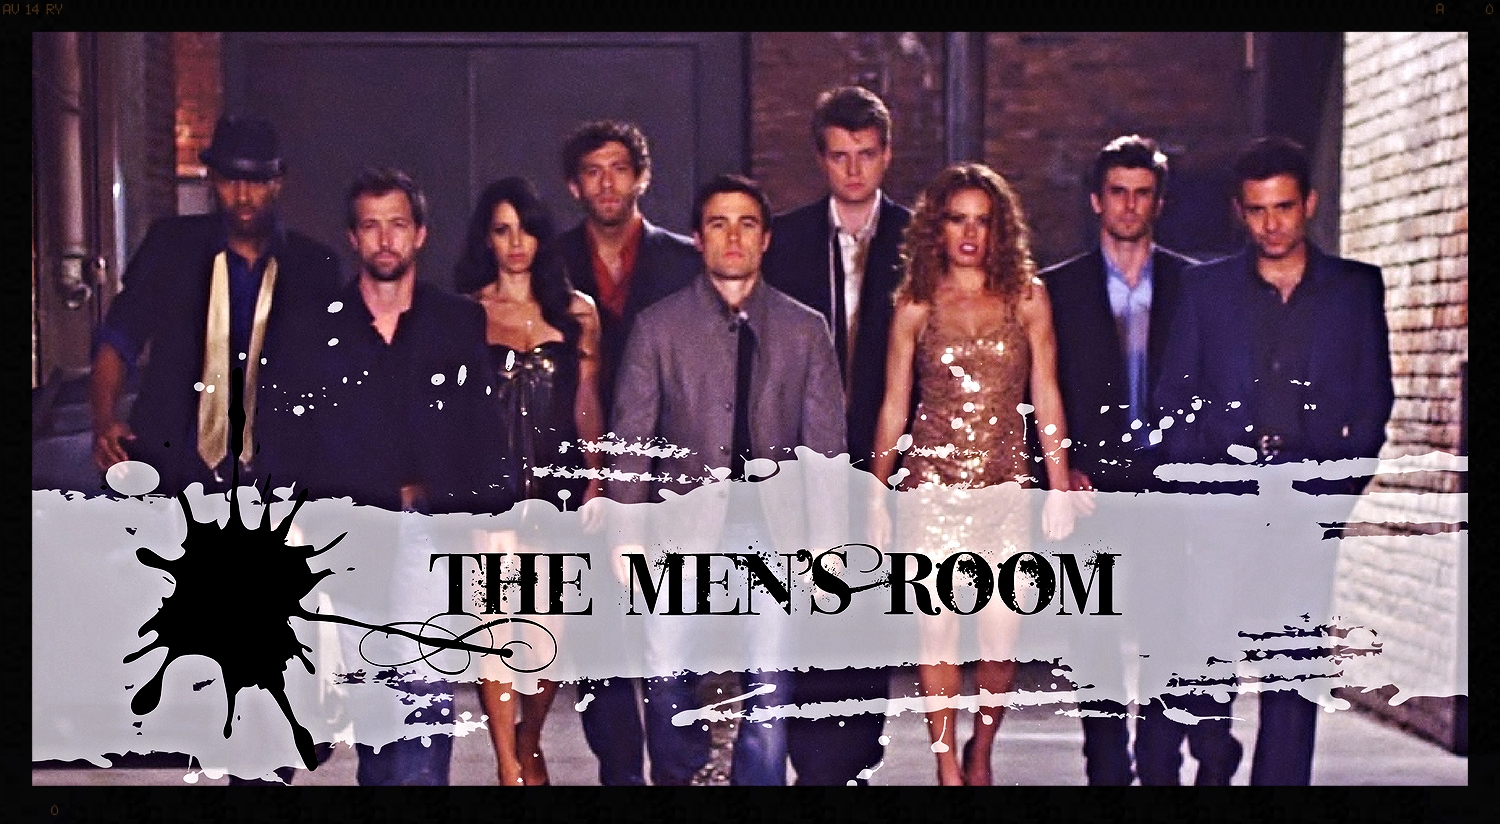 The Cast of The Men's Room  (T'Shaun Barrett, Sitara Falcon, Marta McGonagle, Bruce Wexler, Rob Belushi, Scott Beehner, Jo Newman, Cooper Barnes, Mark Gagliardi)